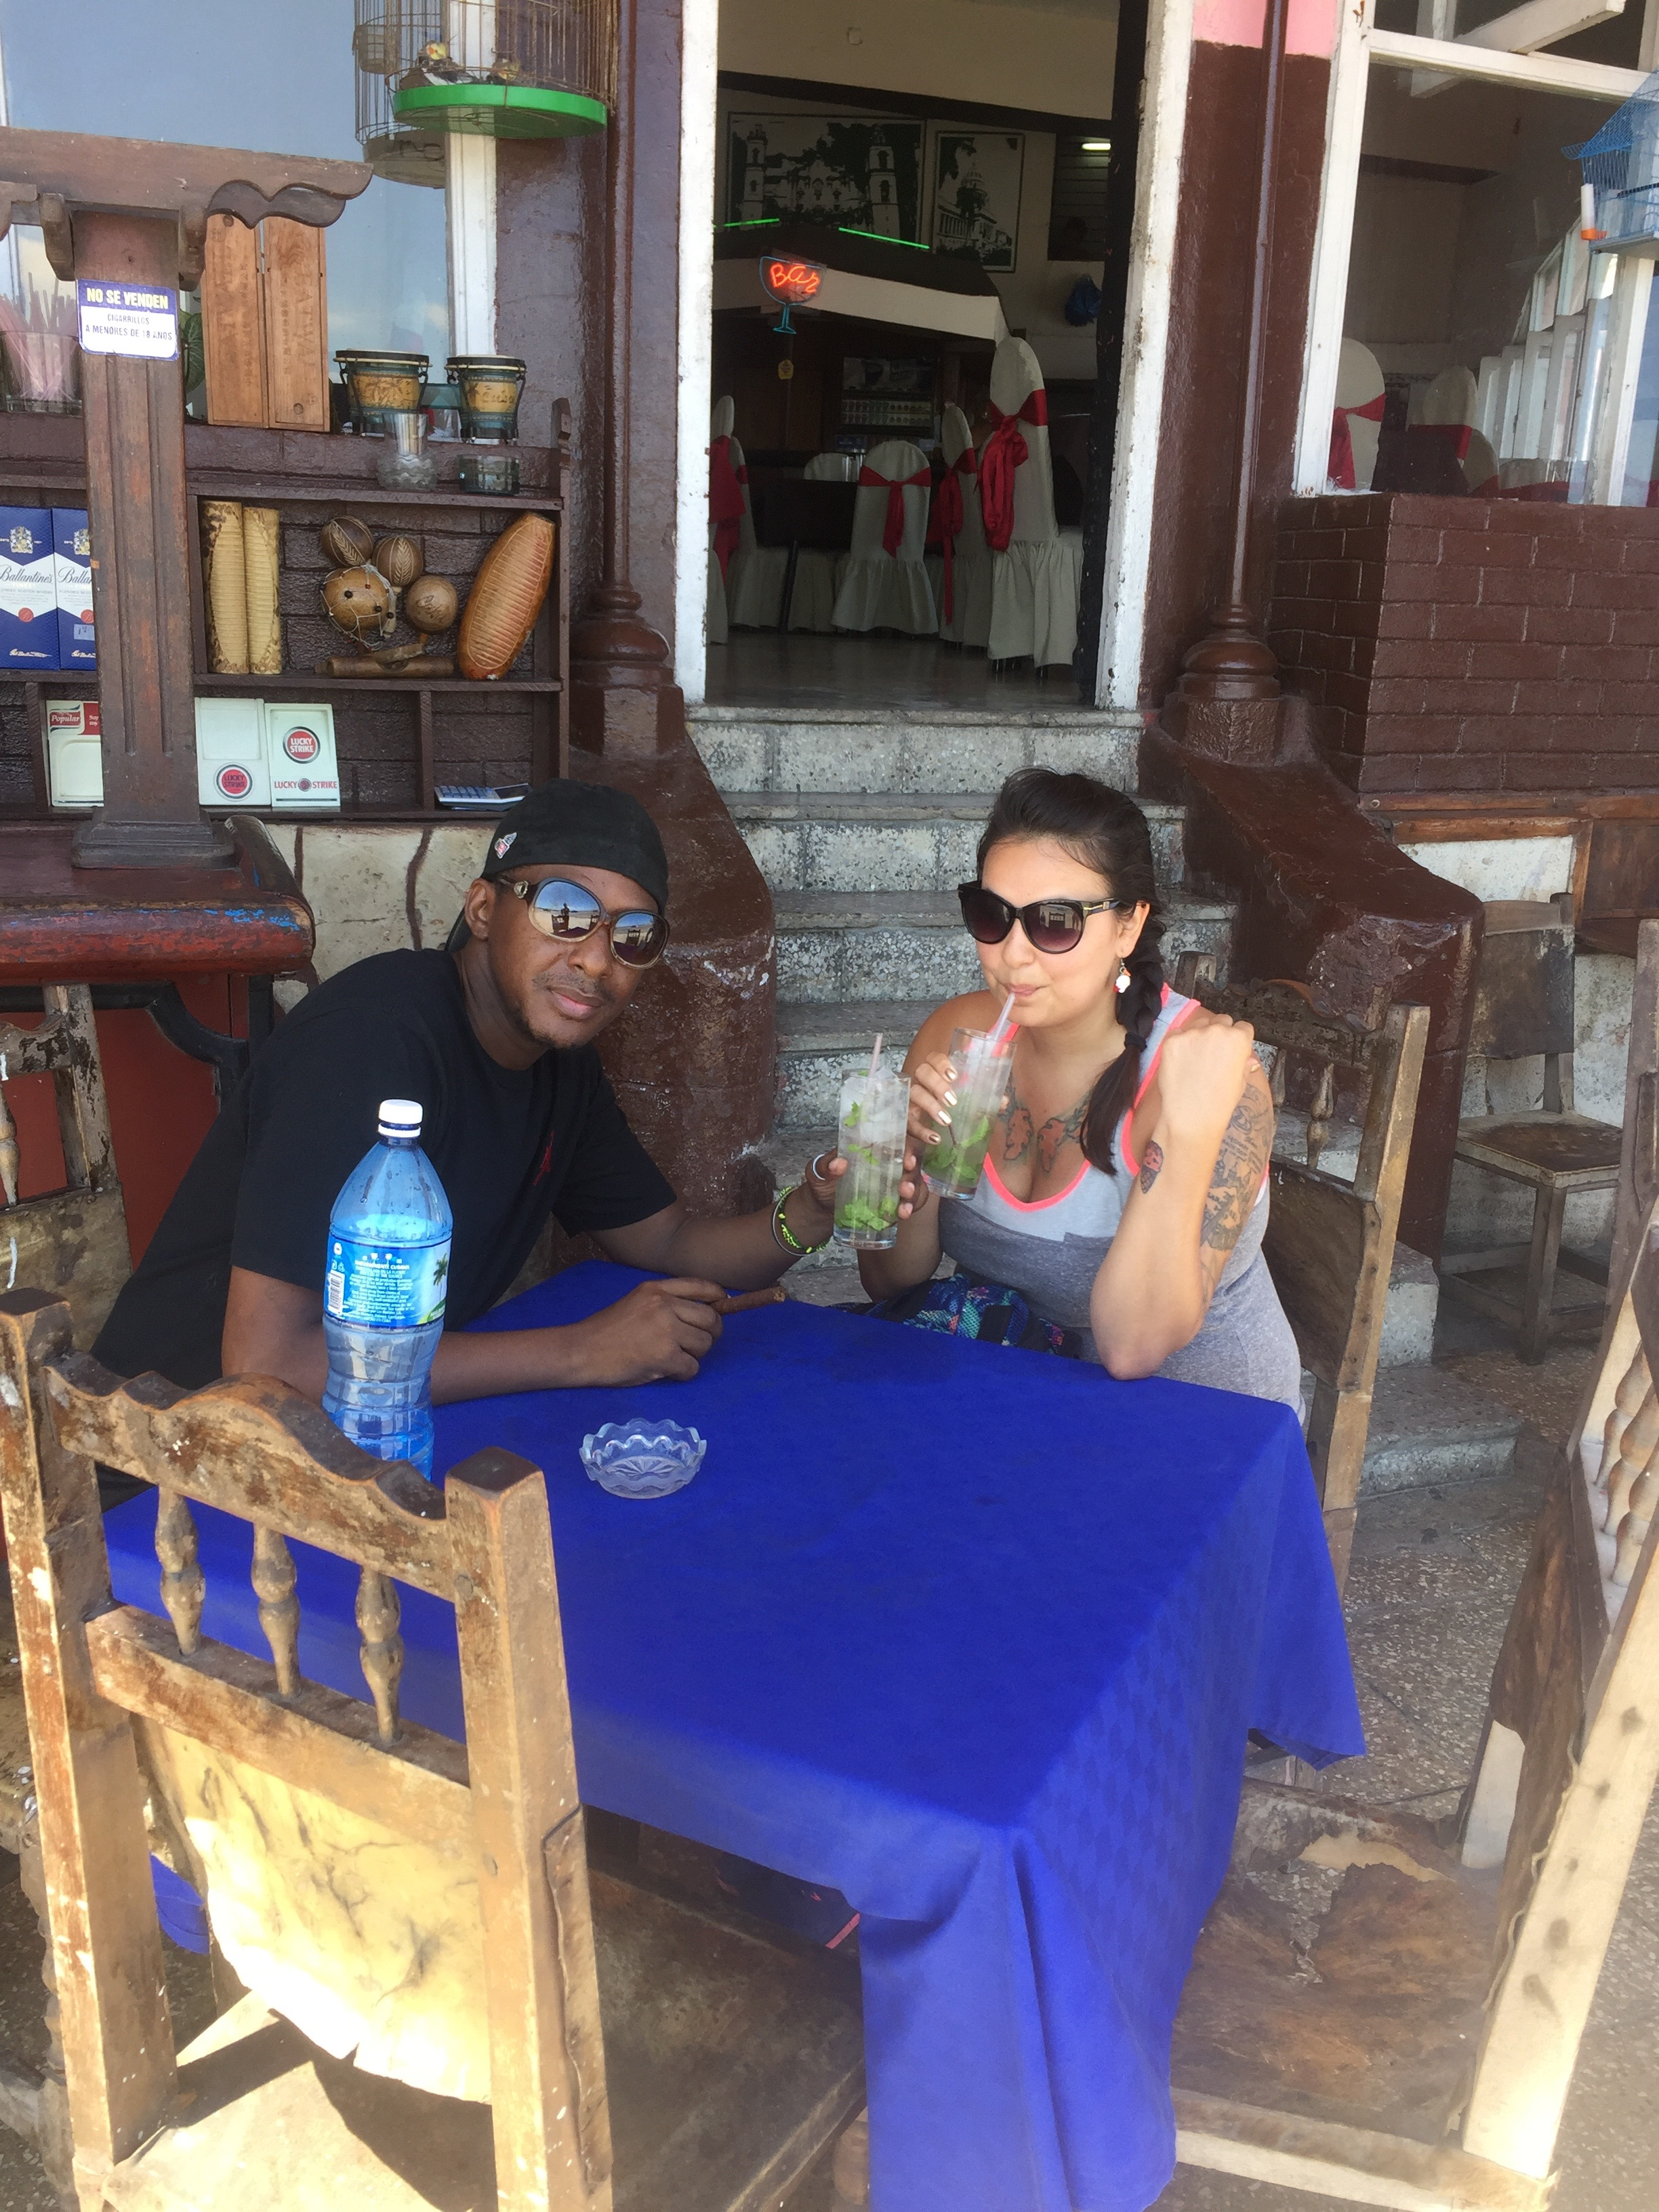 My new Cuban friend, Ale, and I having some mojitos.